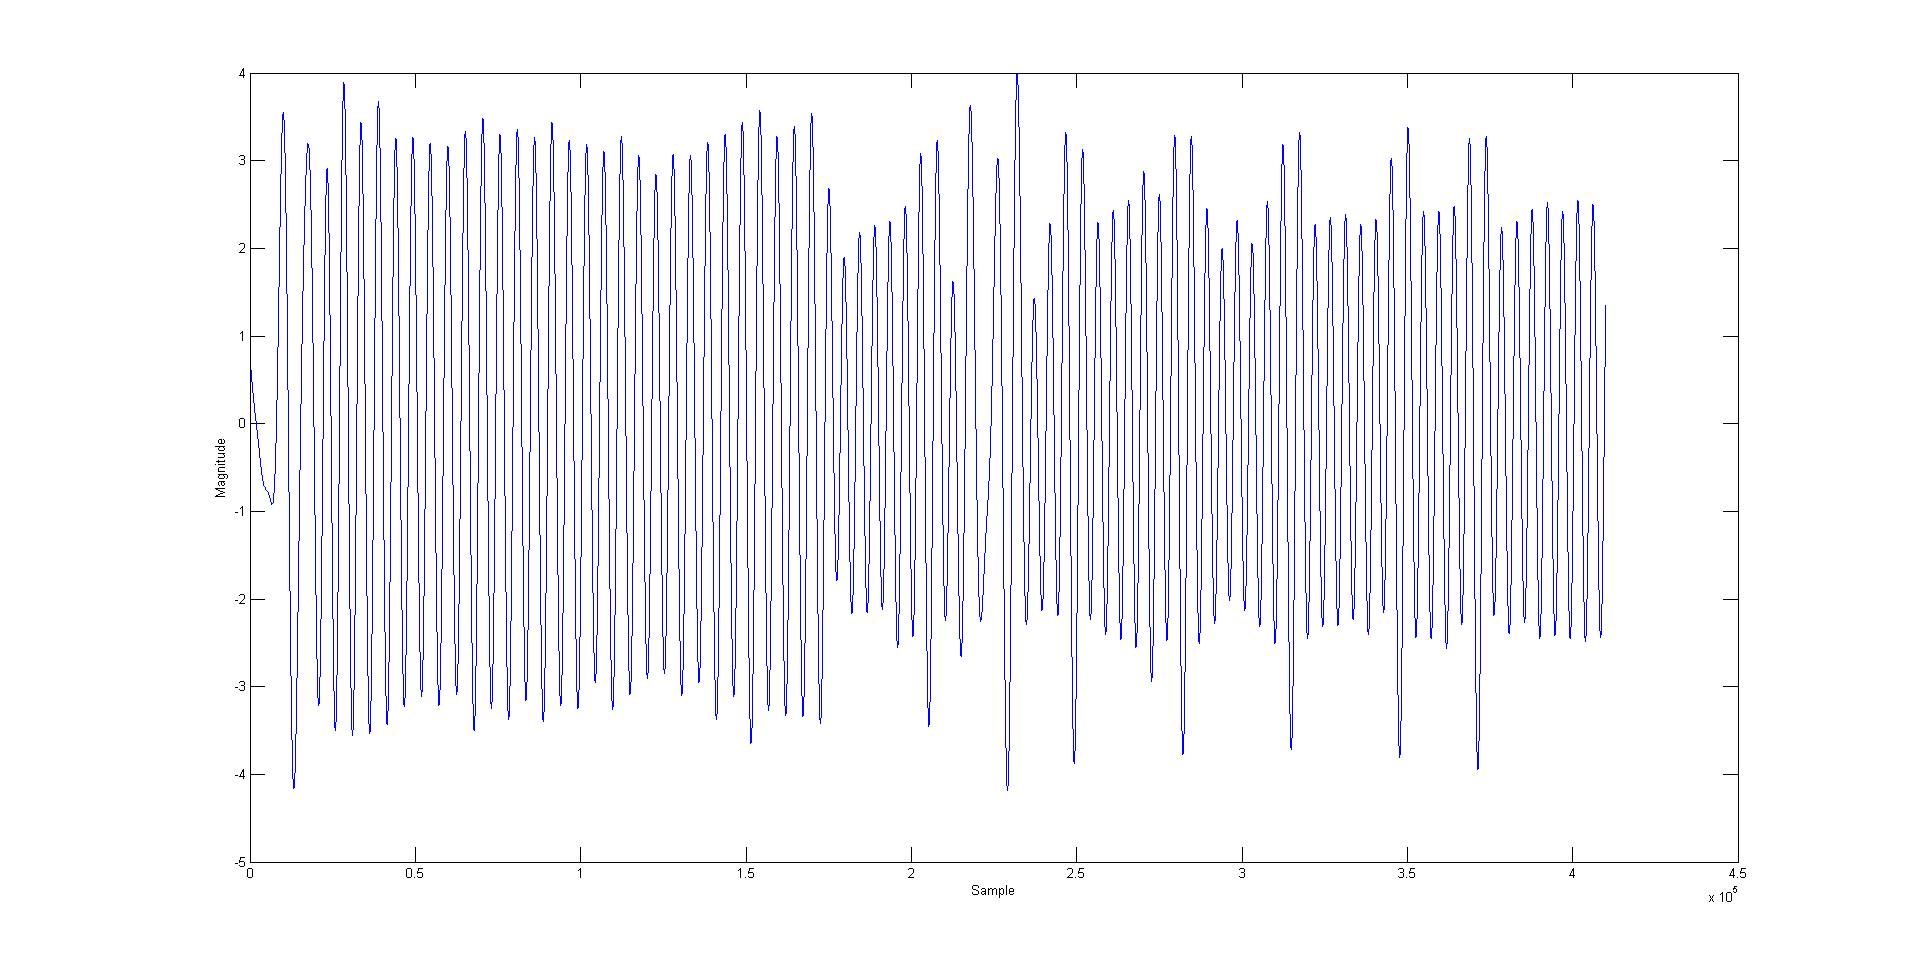 3.4.1.3 1024-bit key Finally, we look at a 1024-bit key RSA, which is a very common key length, and the general trace information is shown below.